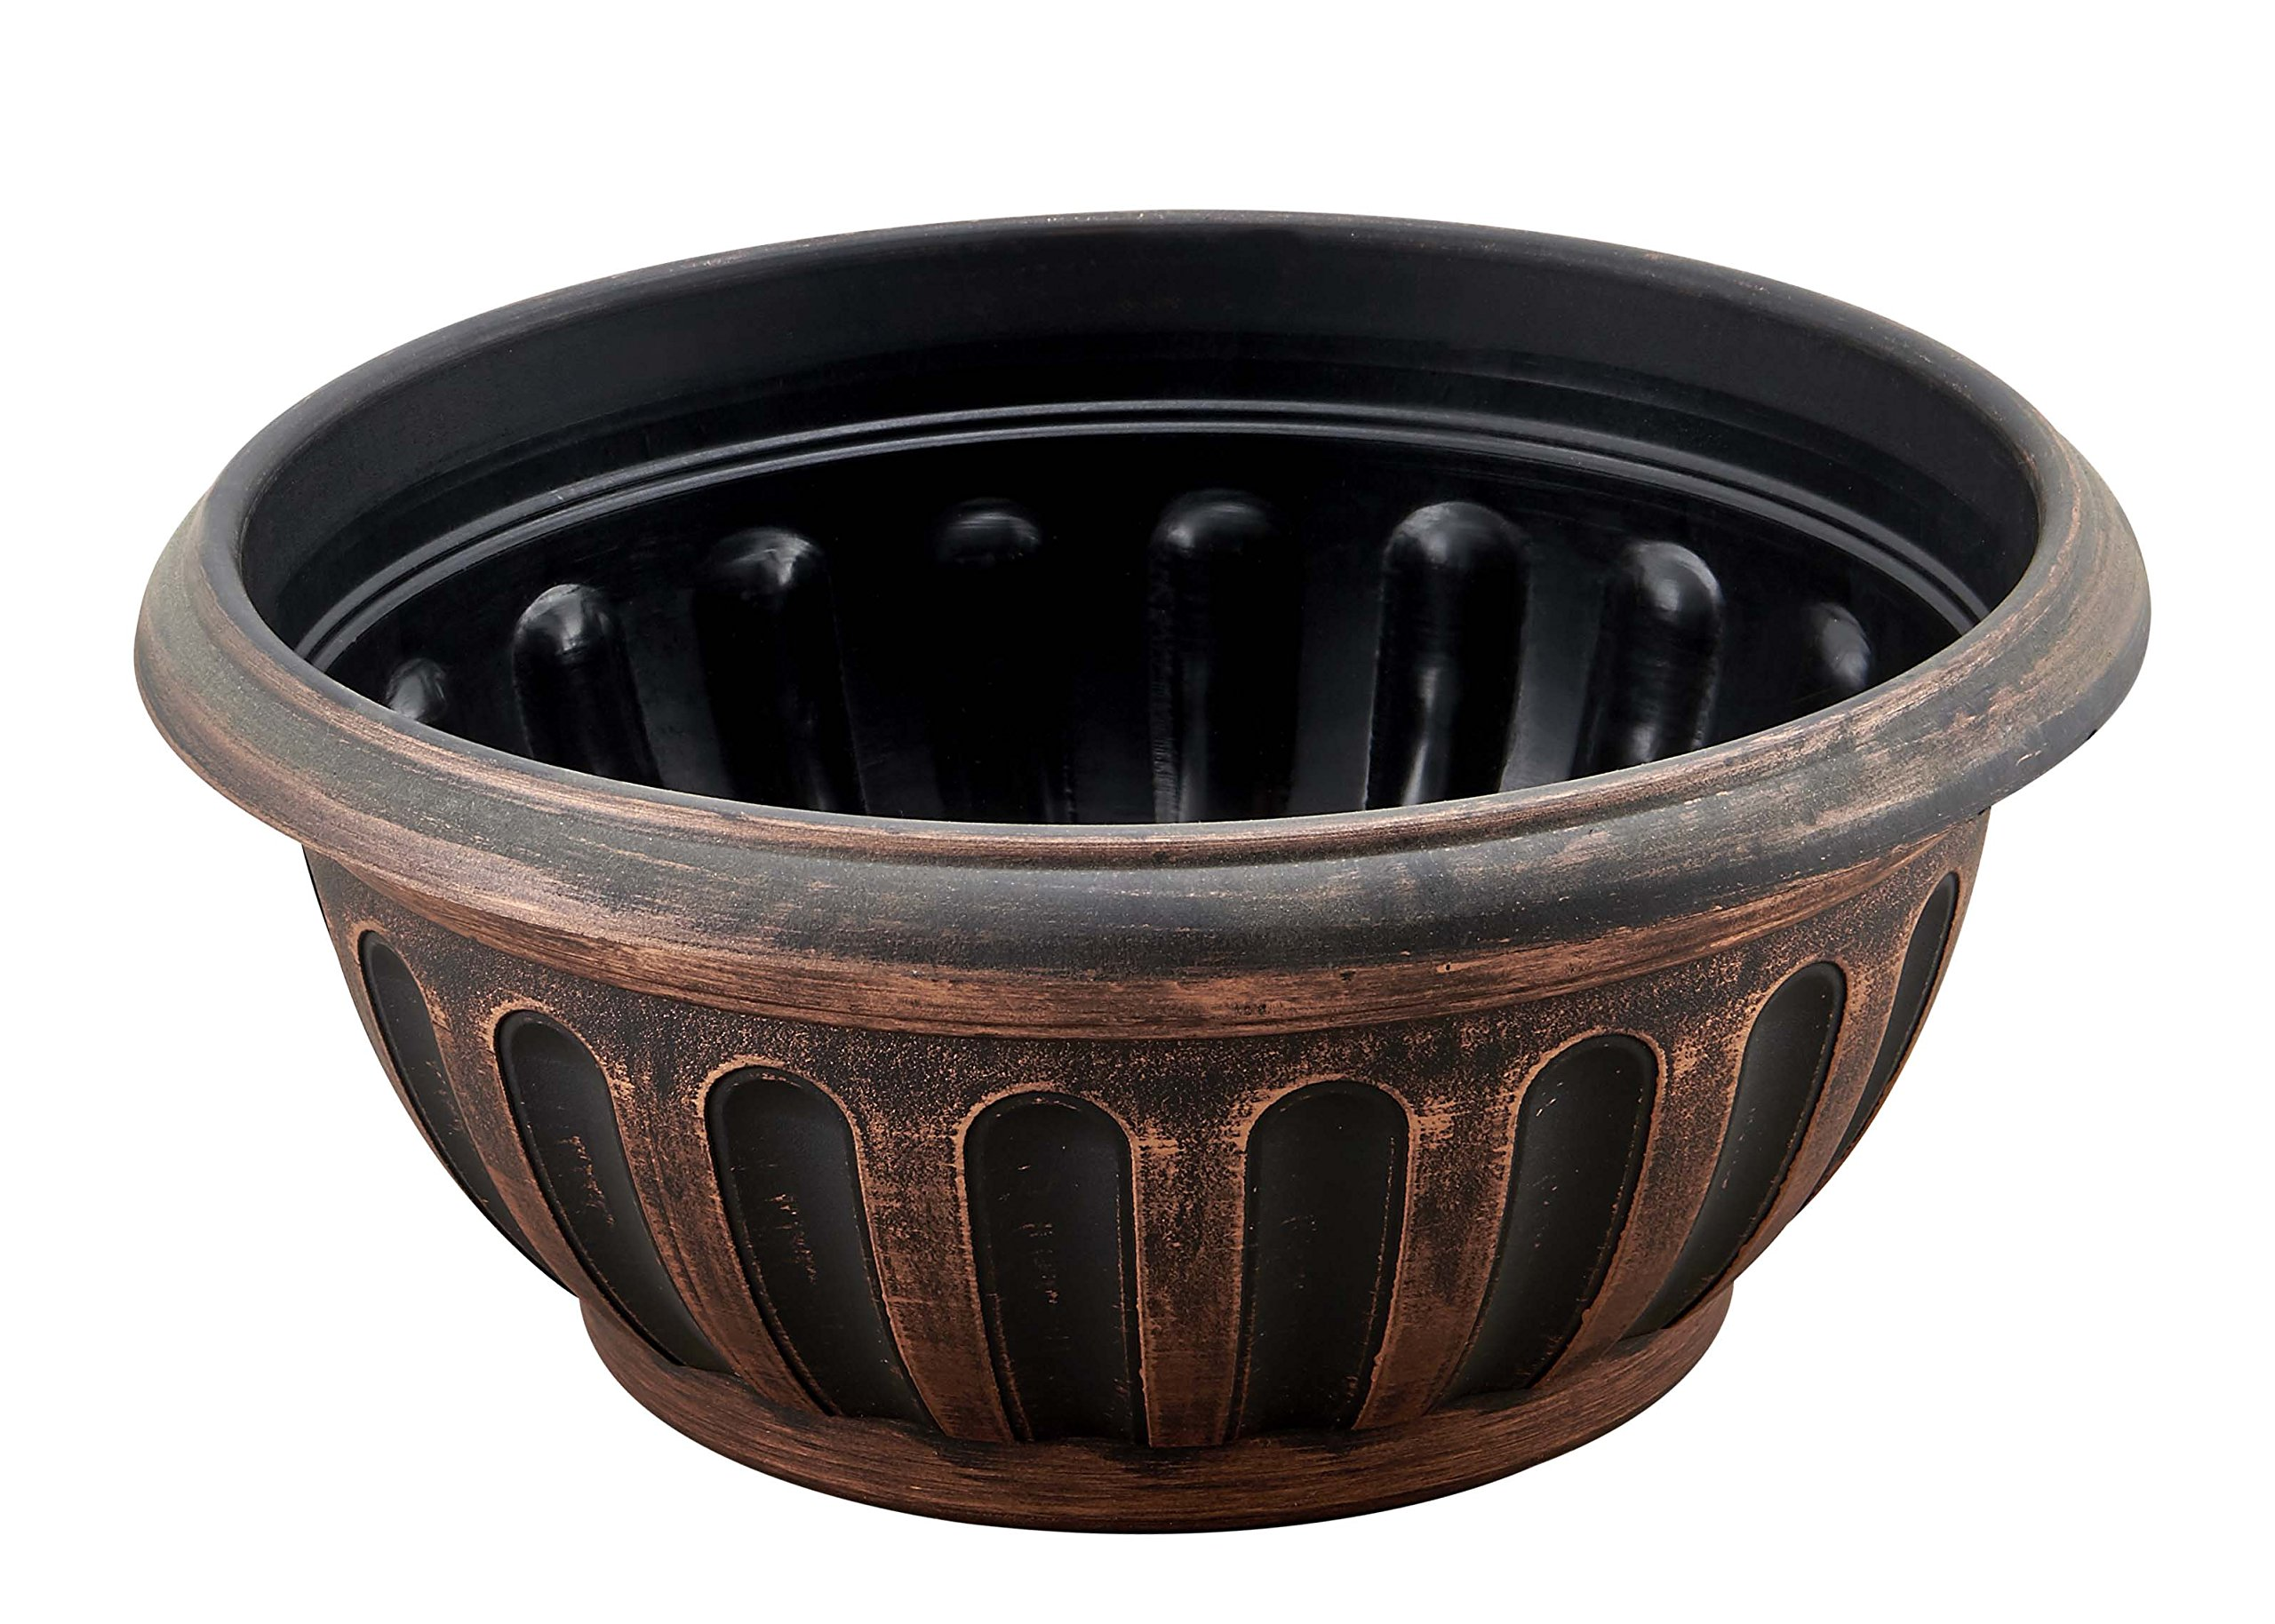 Round Rustic Shallow Dome Bowl Planter Fancy Look Flowerpot with Wide Base for Indoor Outdoor Garden Patio Office Ornaments Home Decor Long Lasting Reusable Light Weight (Copper-S)